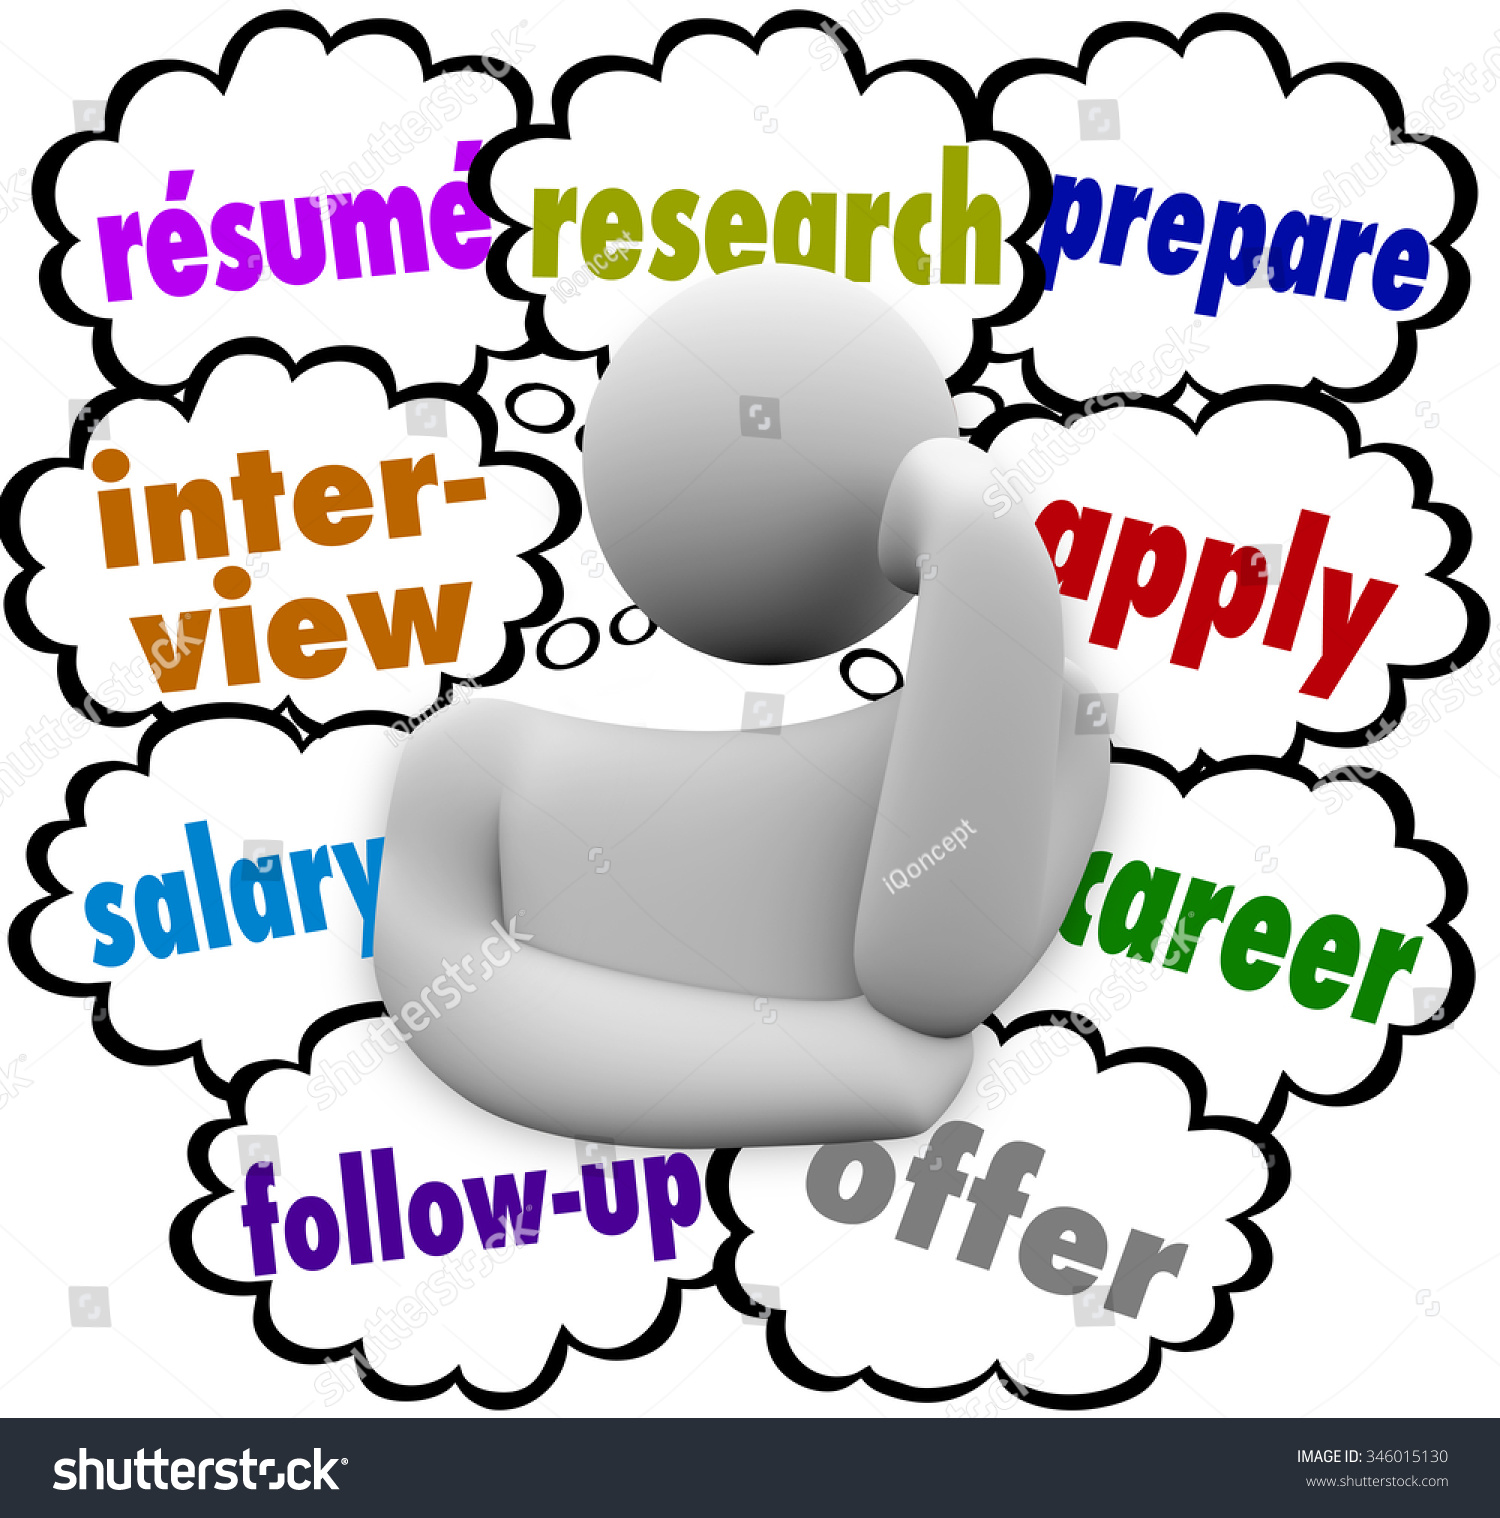 resume job hunting application process words stock illustration Social Work Resume resume and job hunting or application process words in thought clouds over a worker or employee